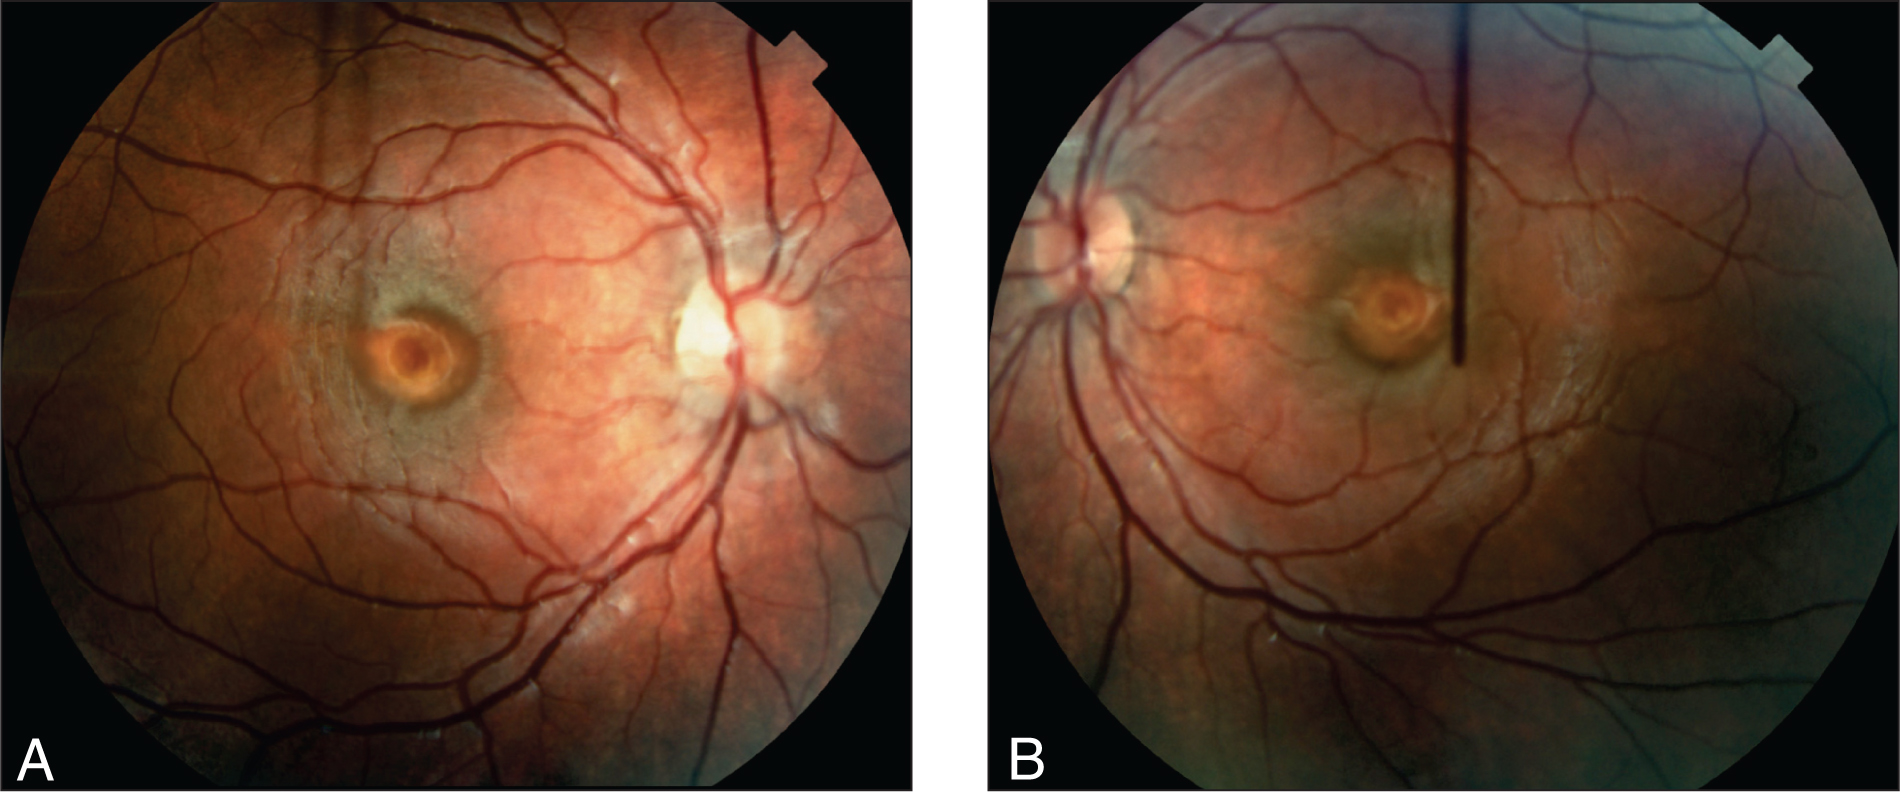 Right (A) and Left (B) Fundus Photographs of the Bilateral Vitelliform Lesions in the Patient at Age 20 Months.